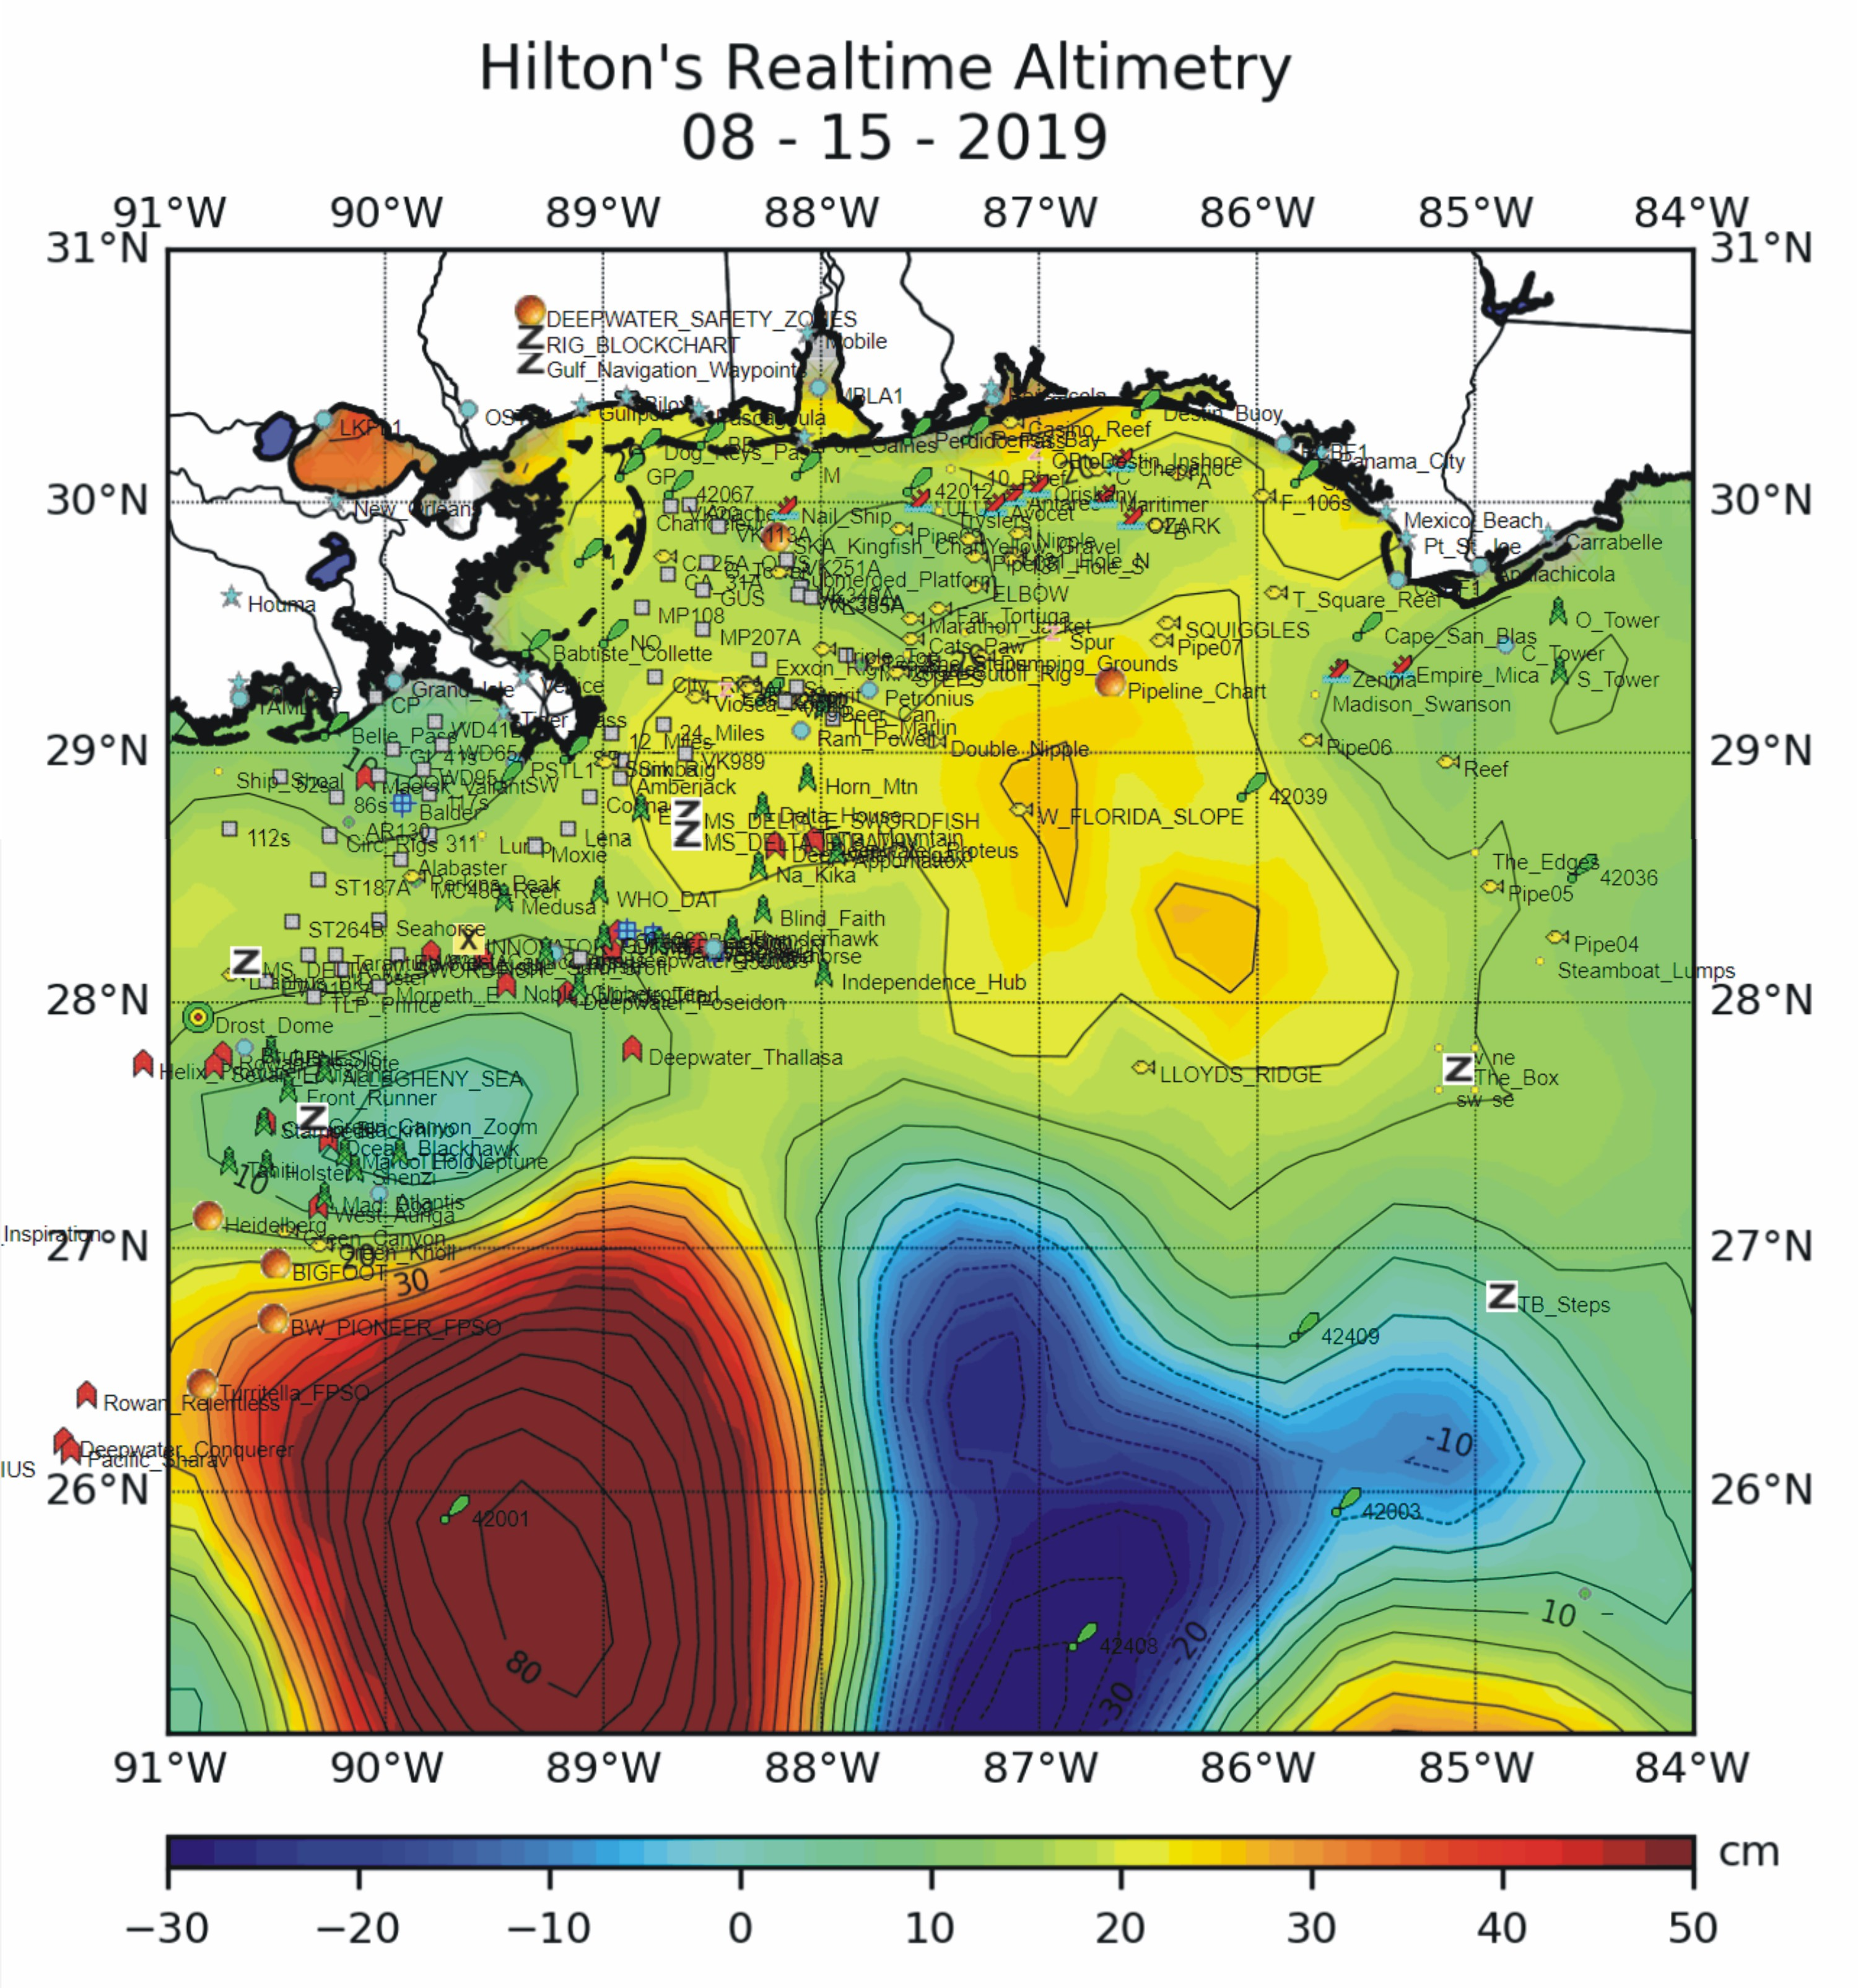 satellite altimetry charts, what is upwelling